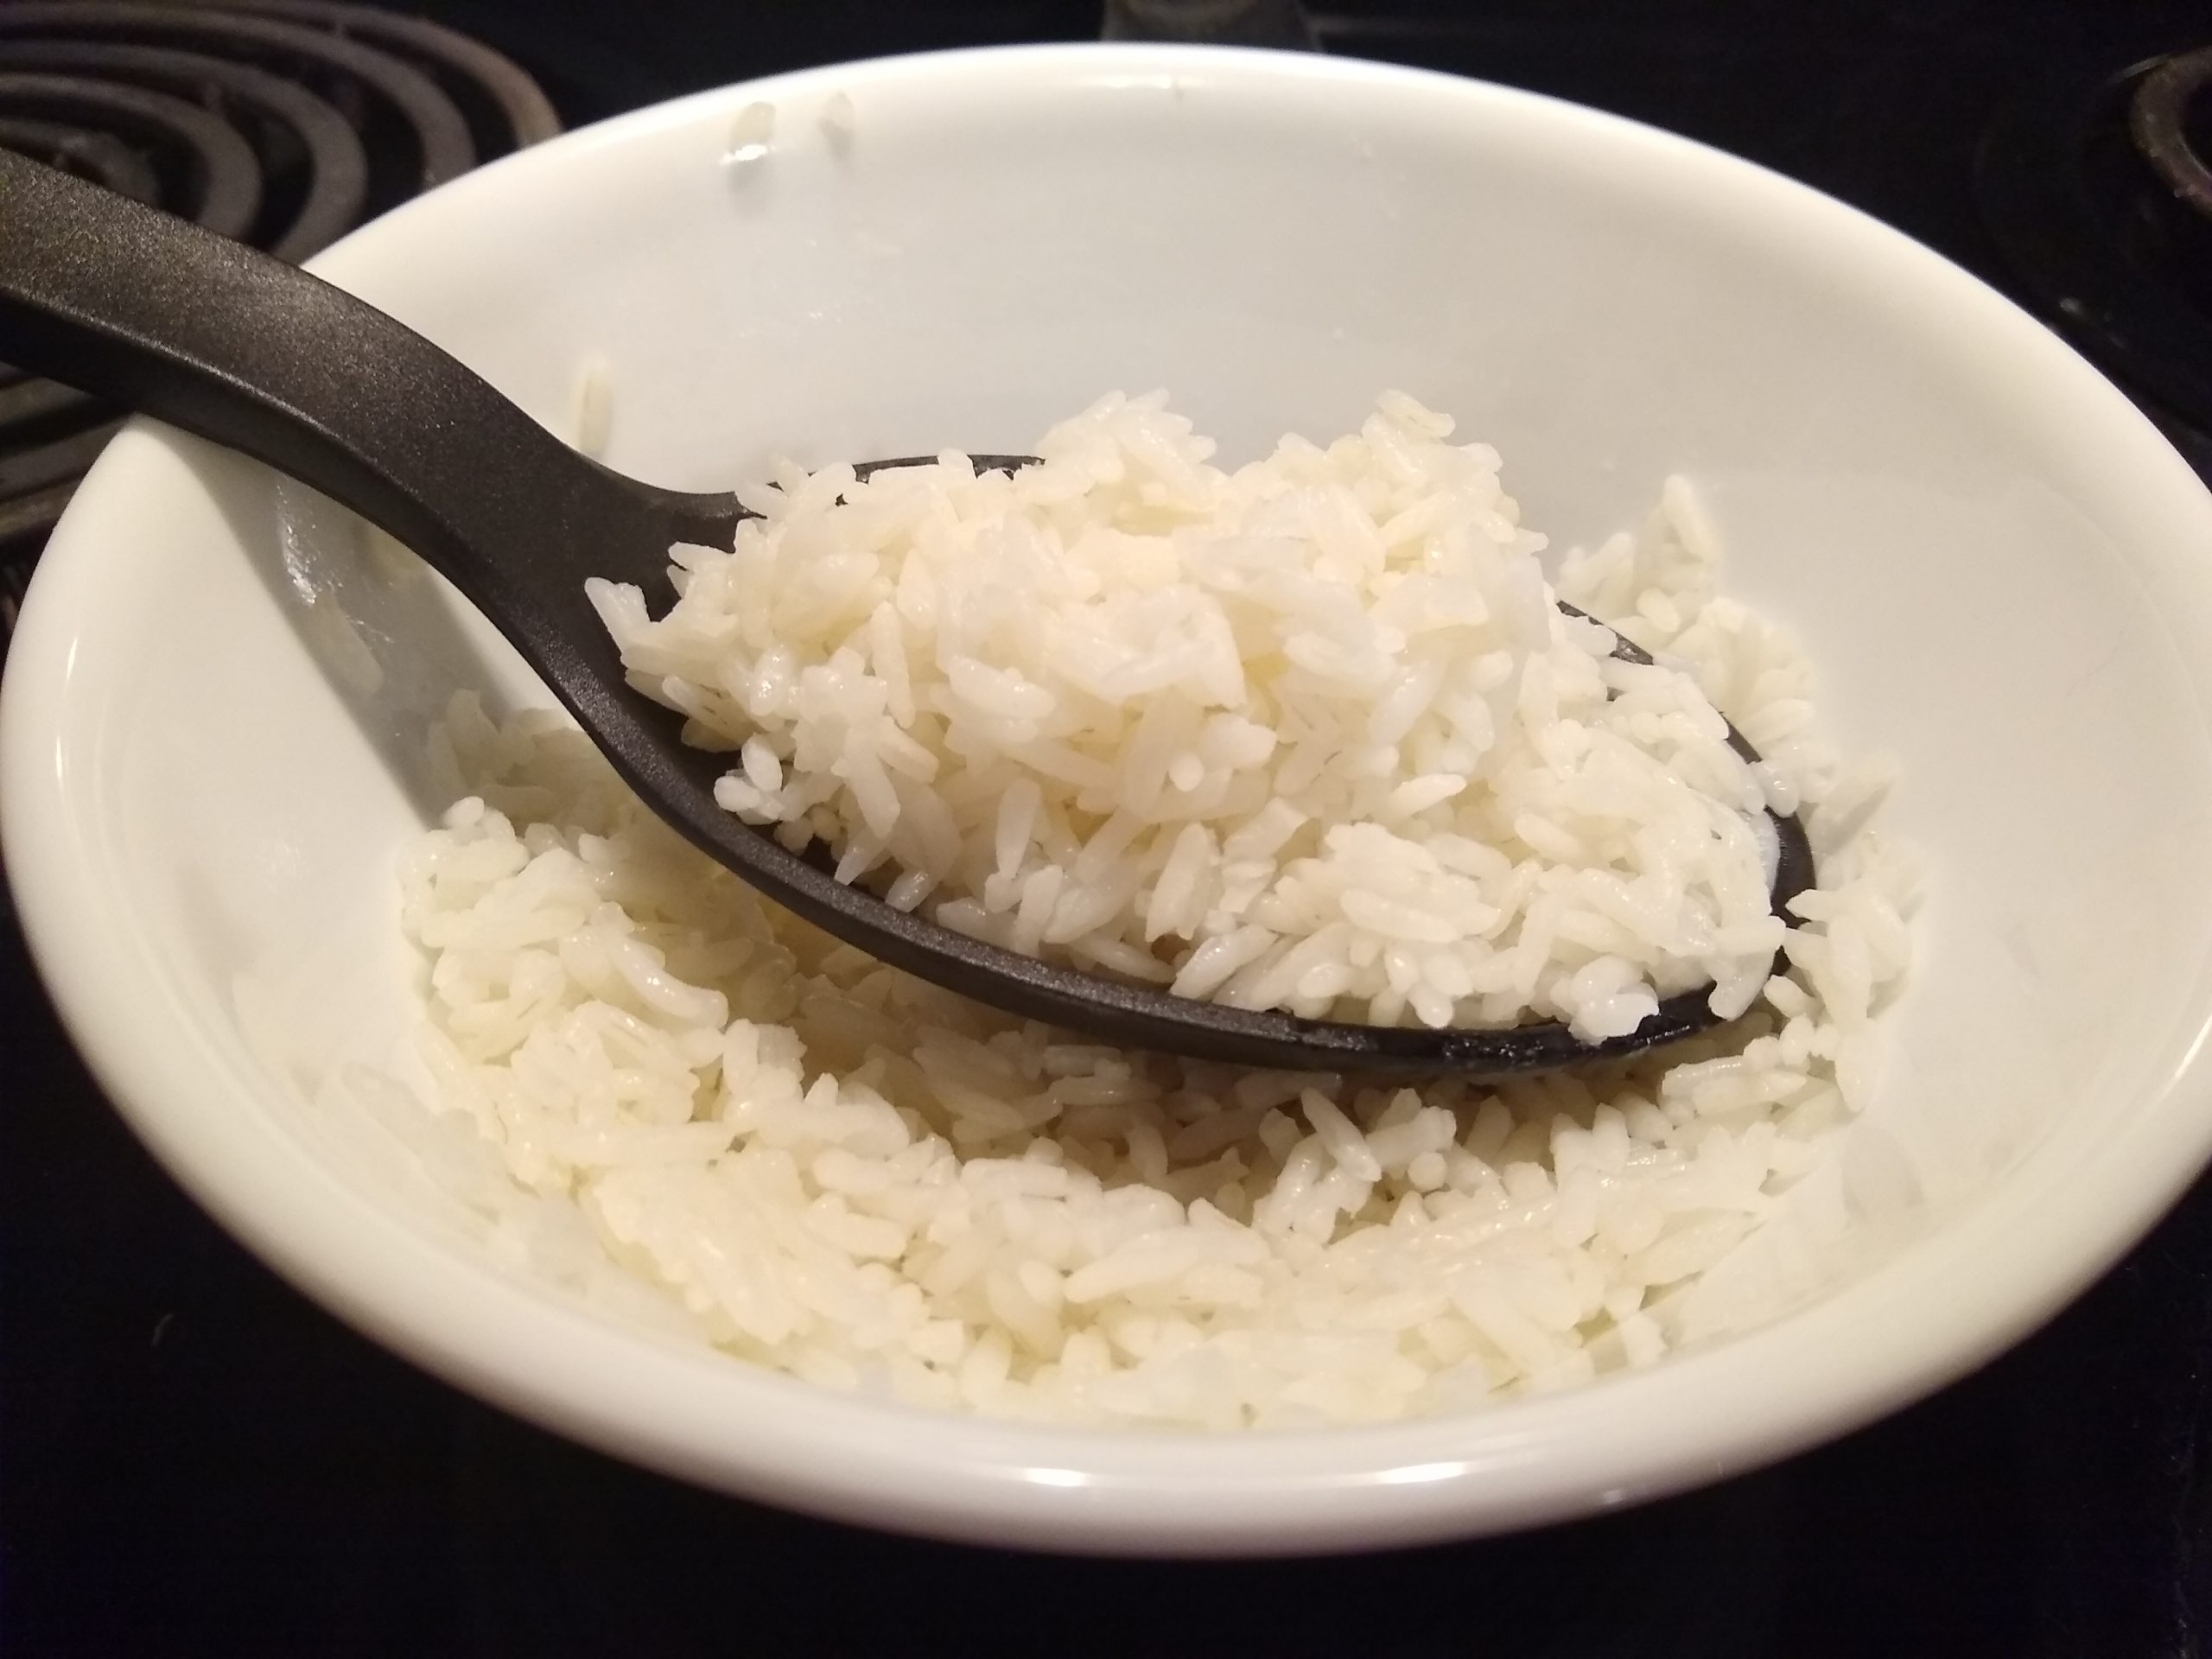 reheating rice in the microwave